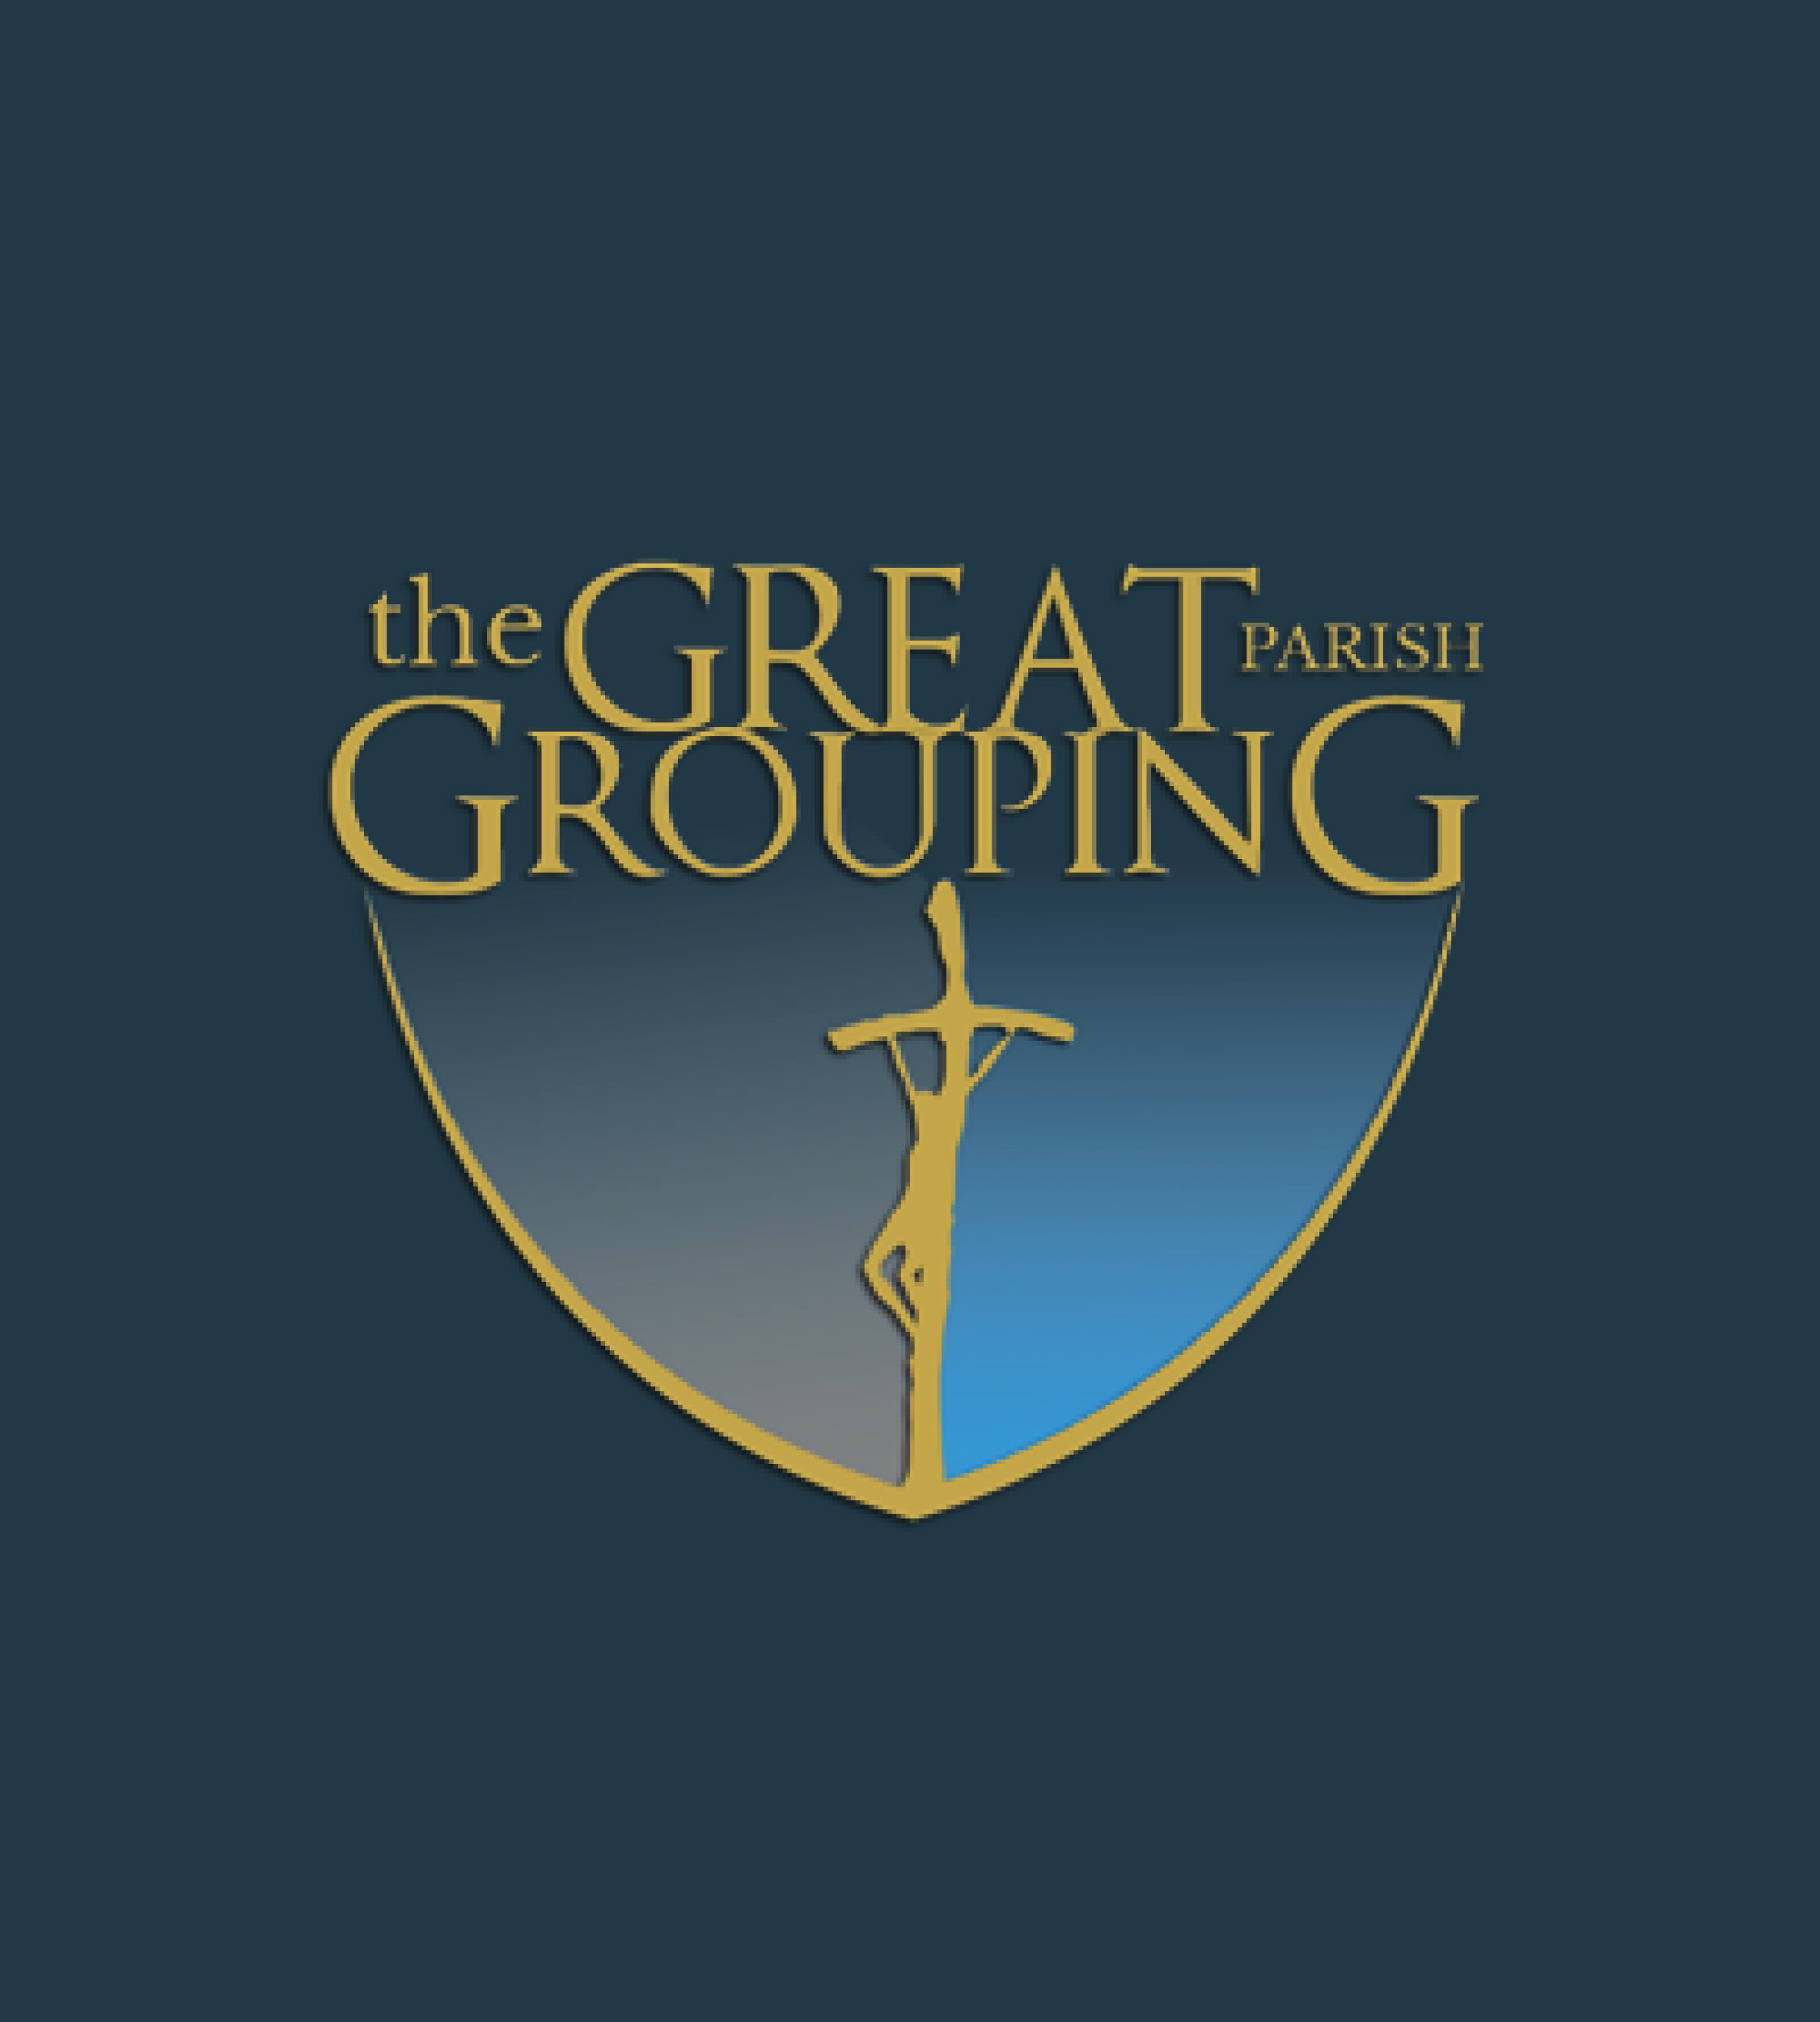 The Great Grouping